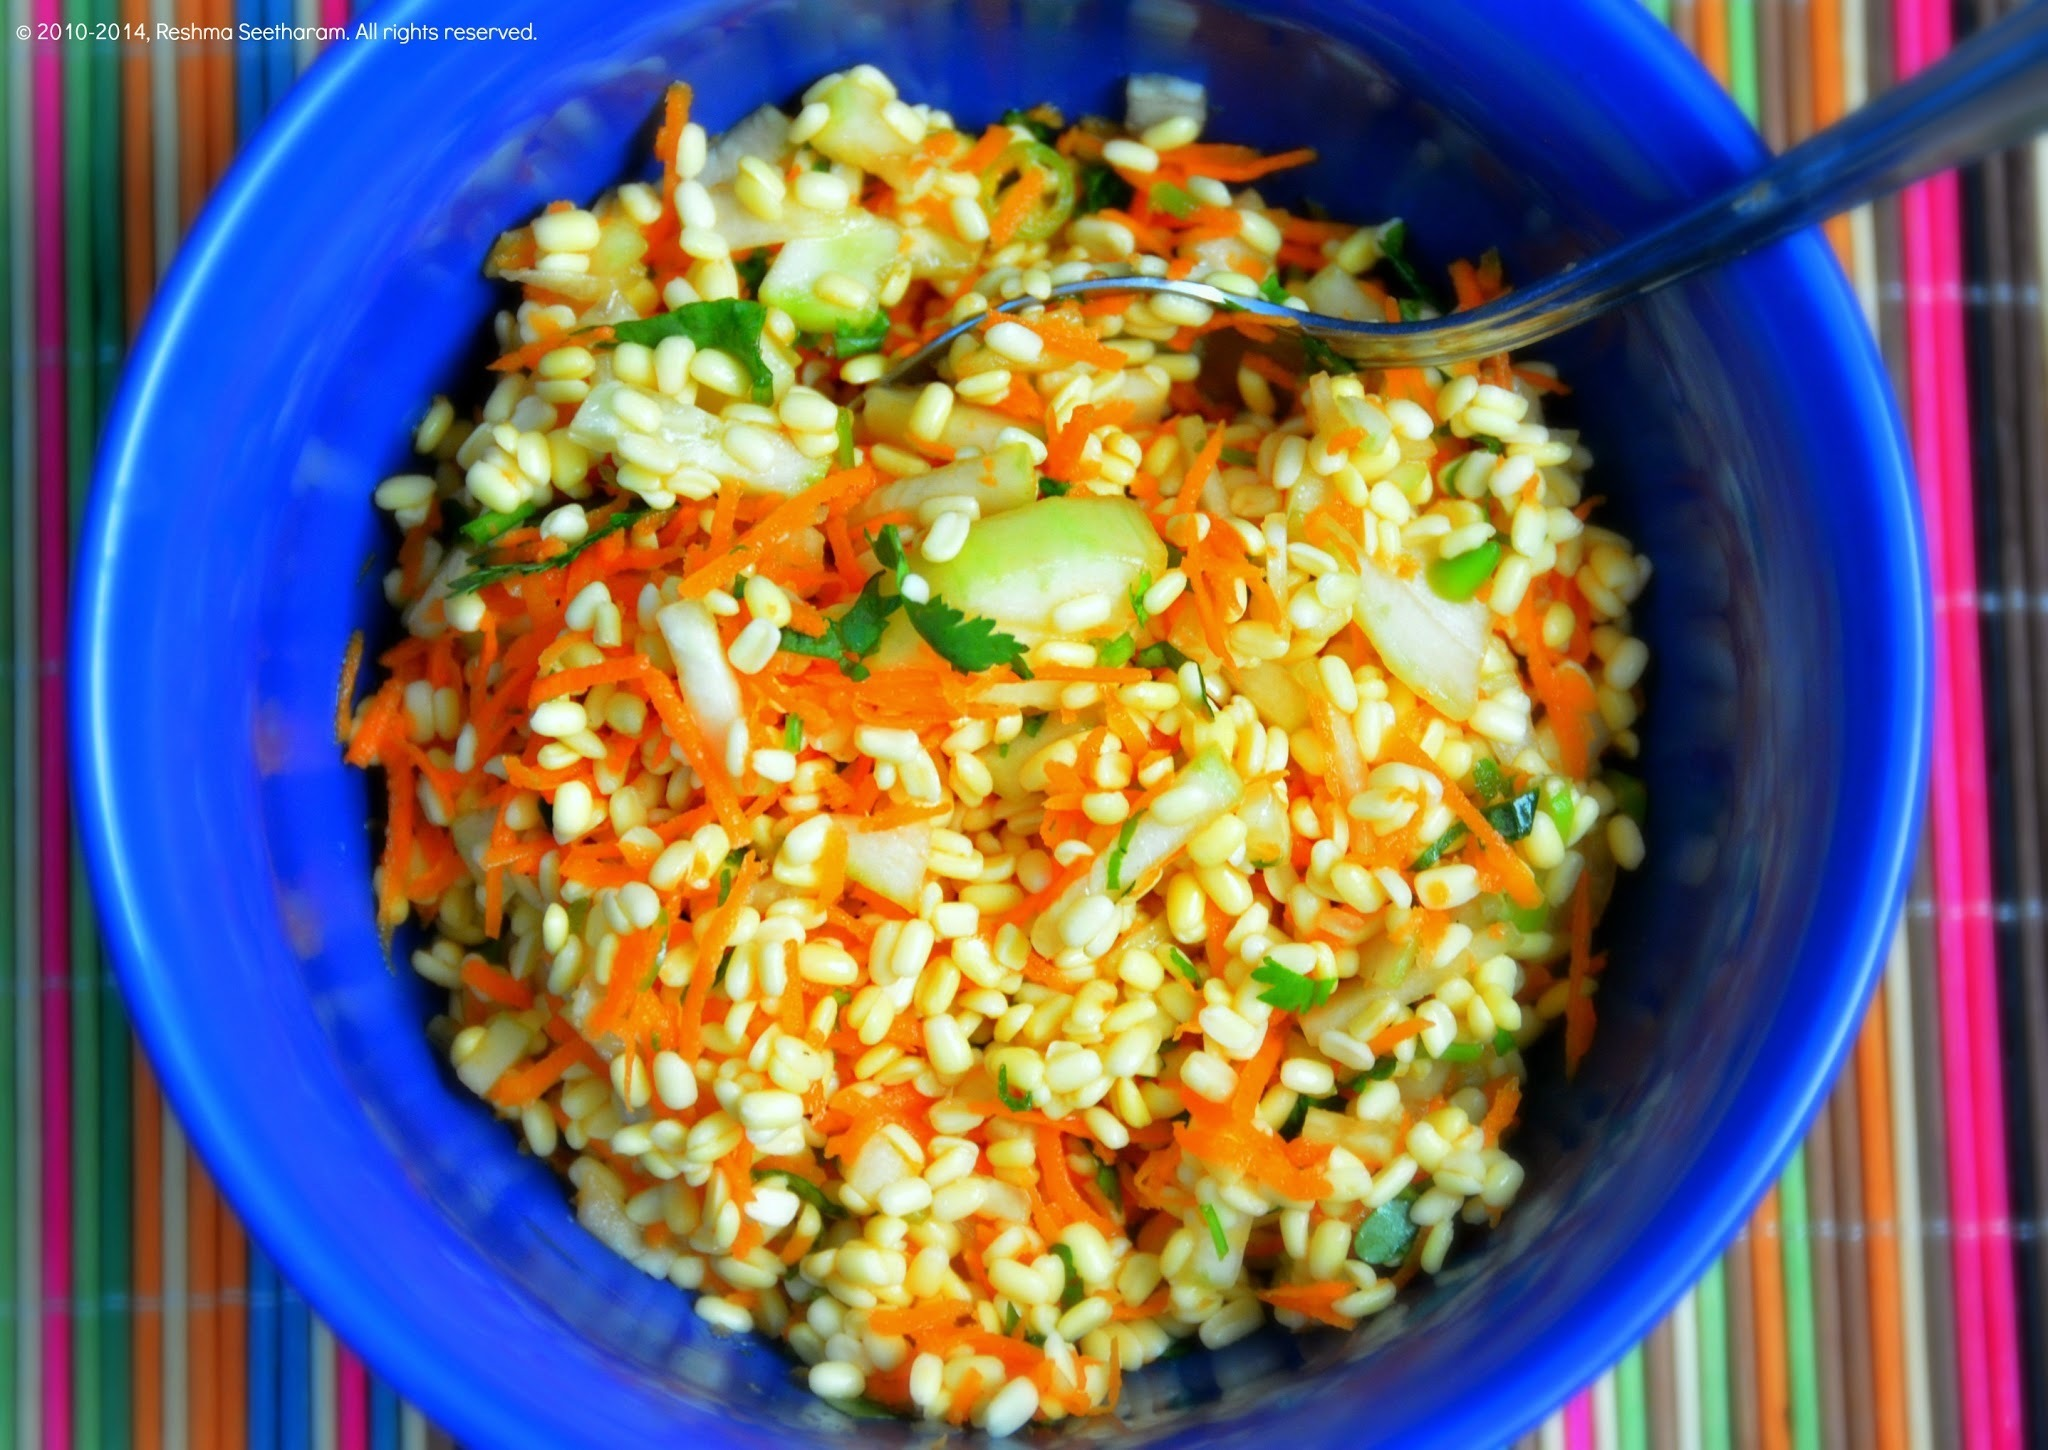 Yellow lentils/moong dal and carrot salad